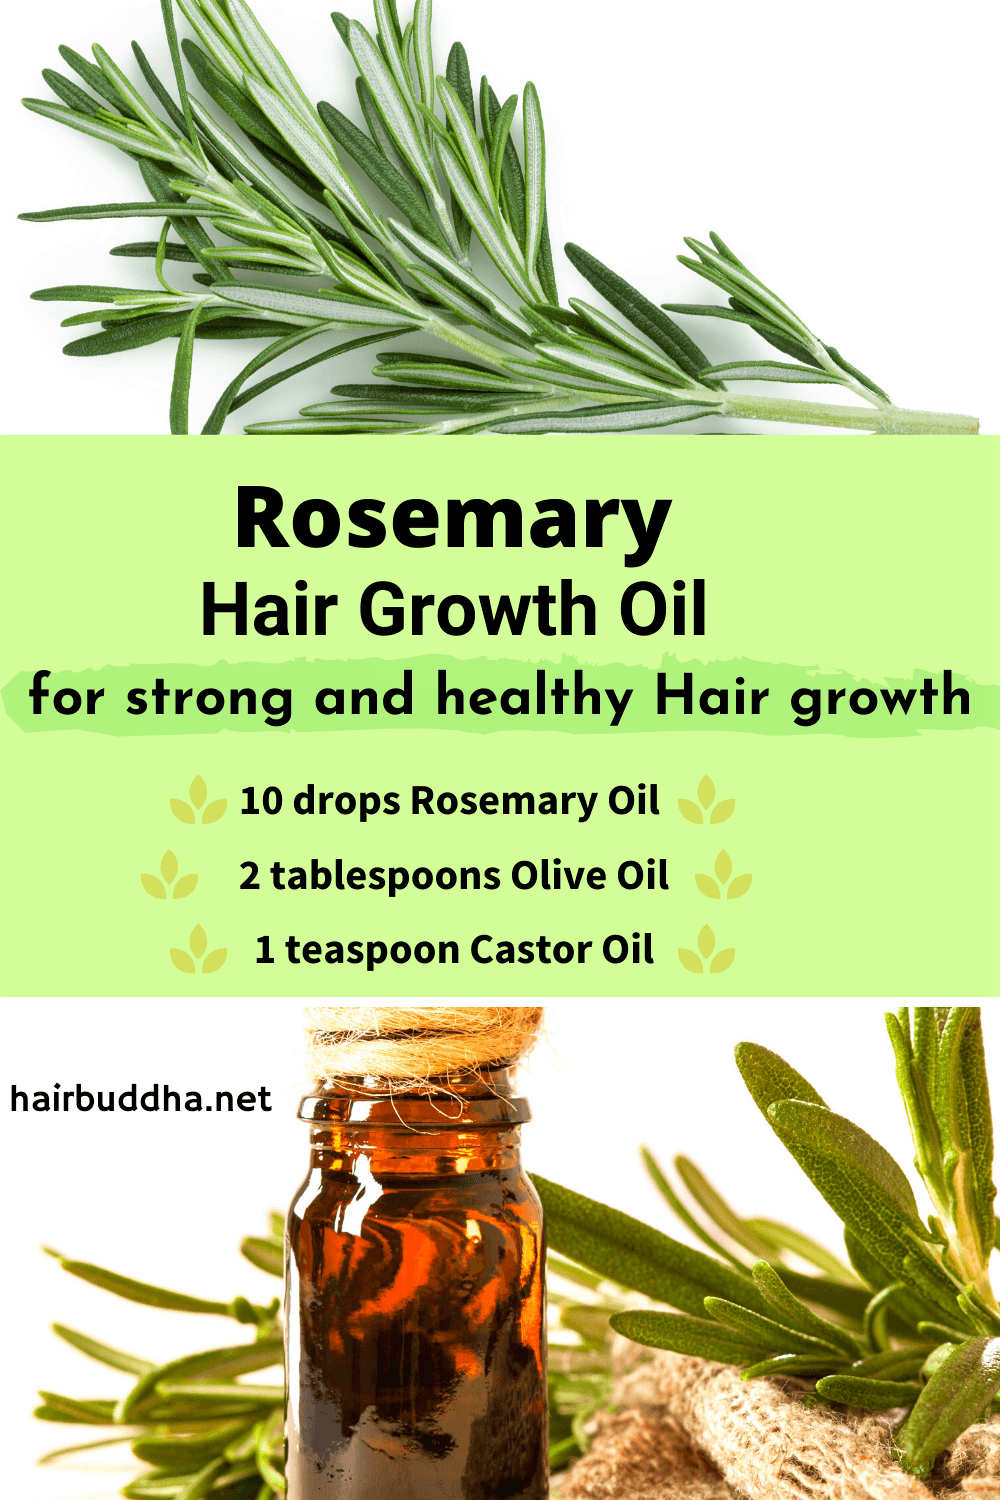 Why Use Rosemary Oil for Hair Growth (Helps with Androgenic Alopecia )